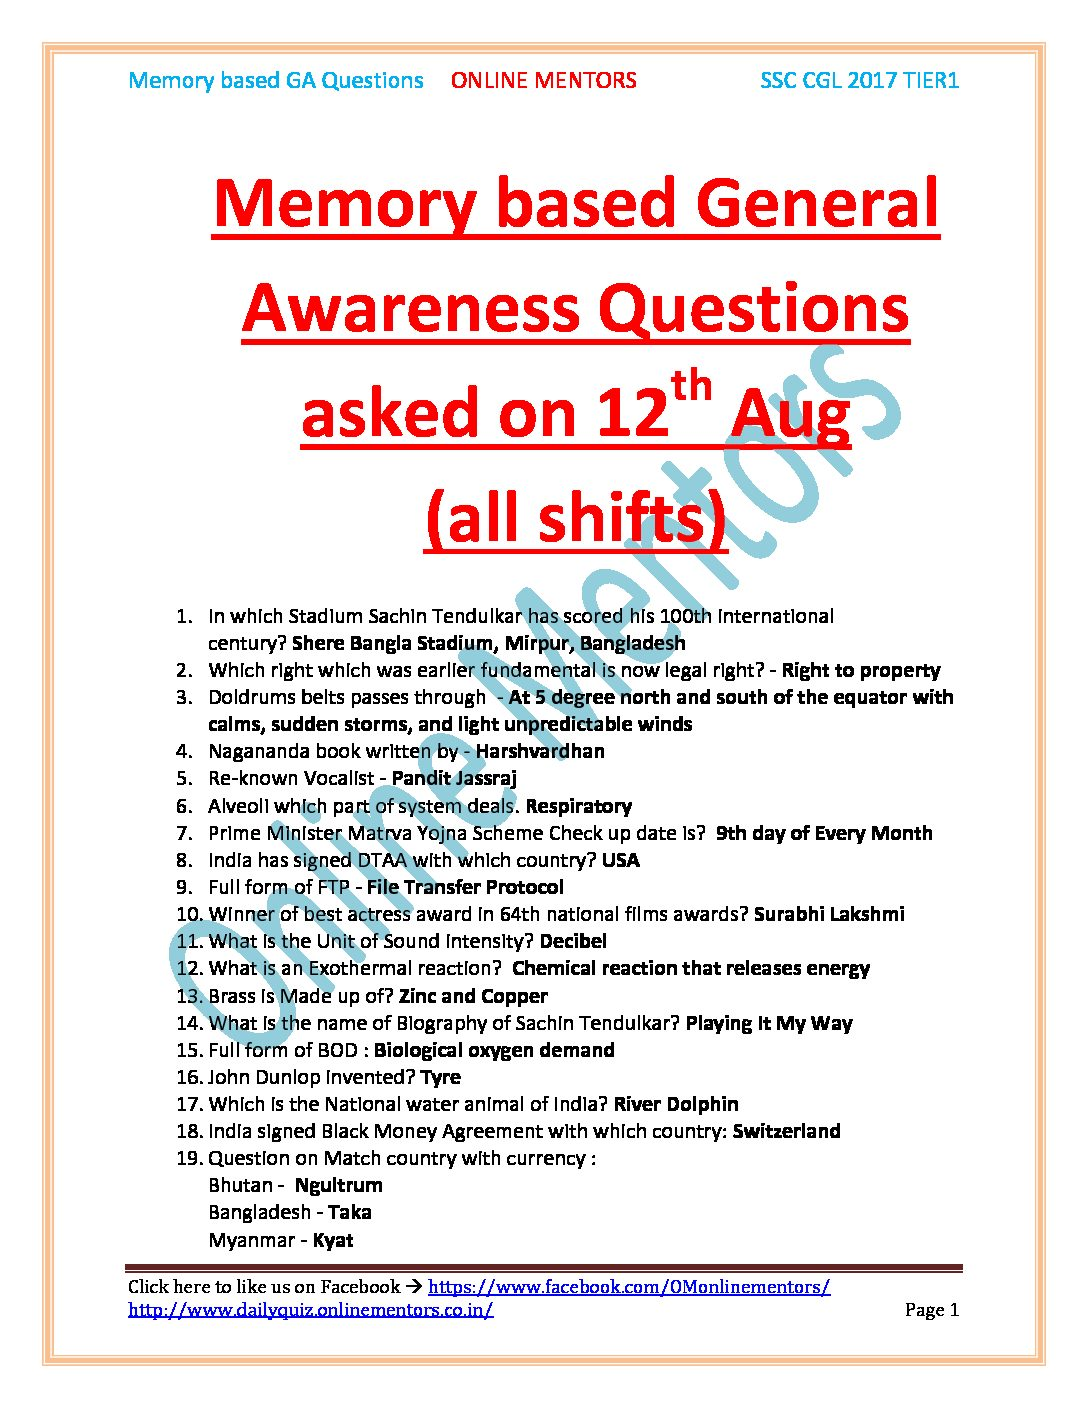 12 Aug All shift SSC CGL GK QUESTIONS PDF DOWNLOAD